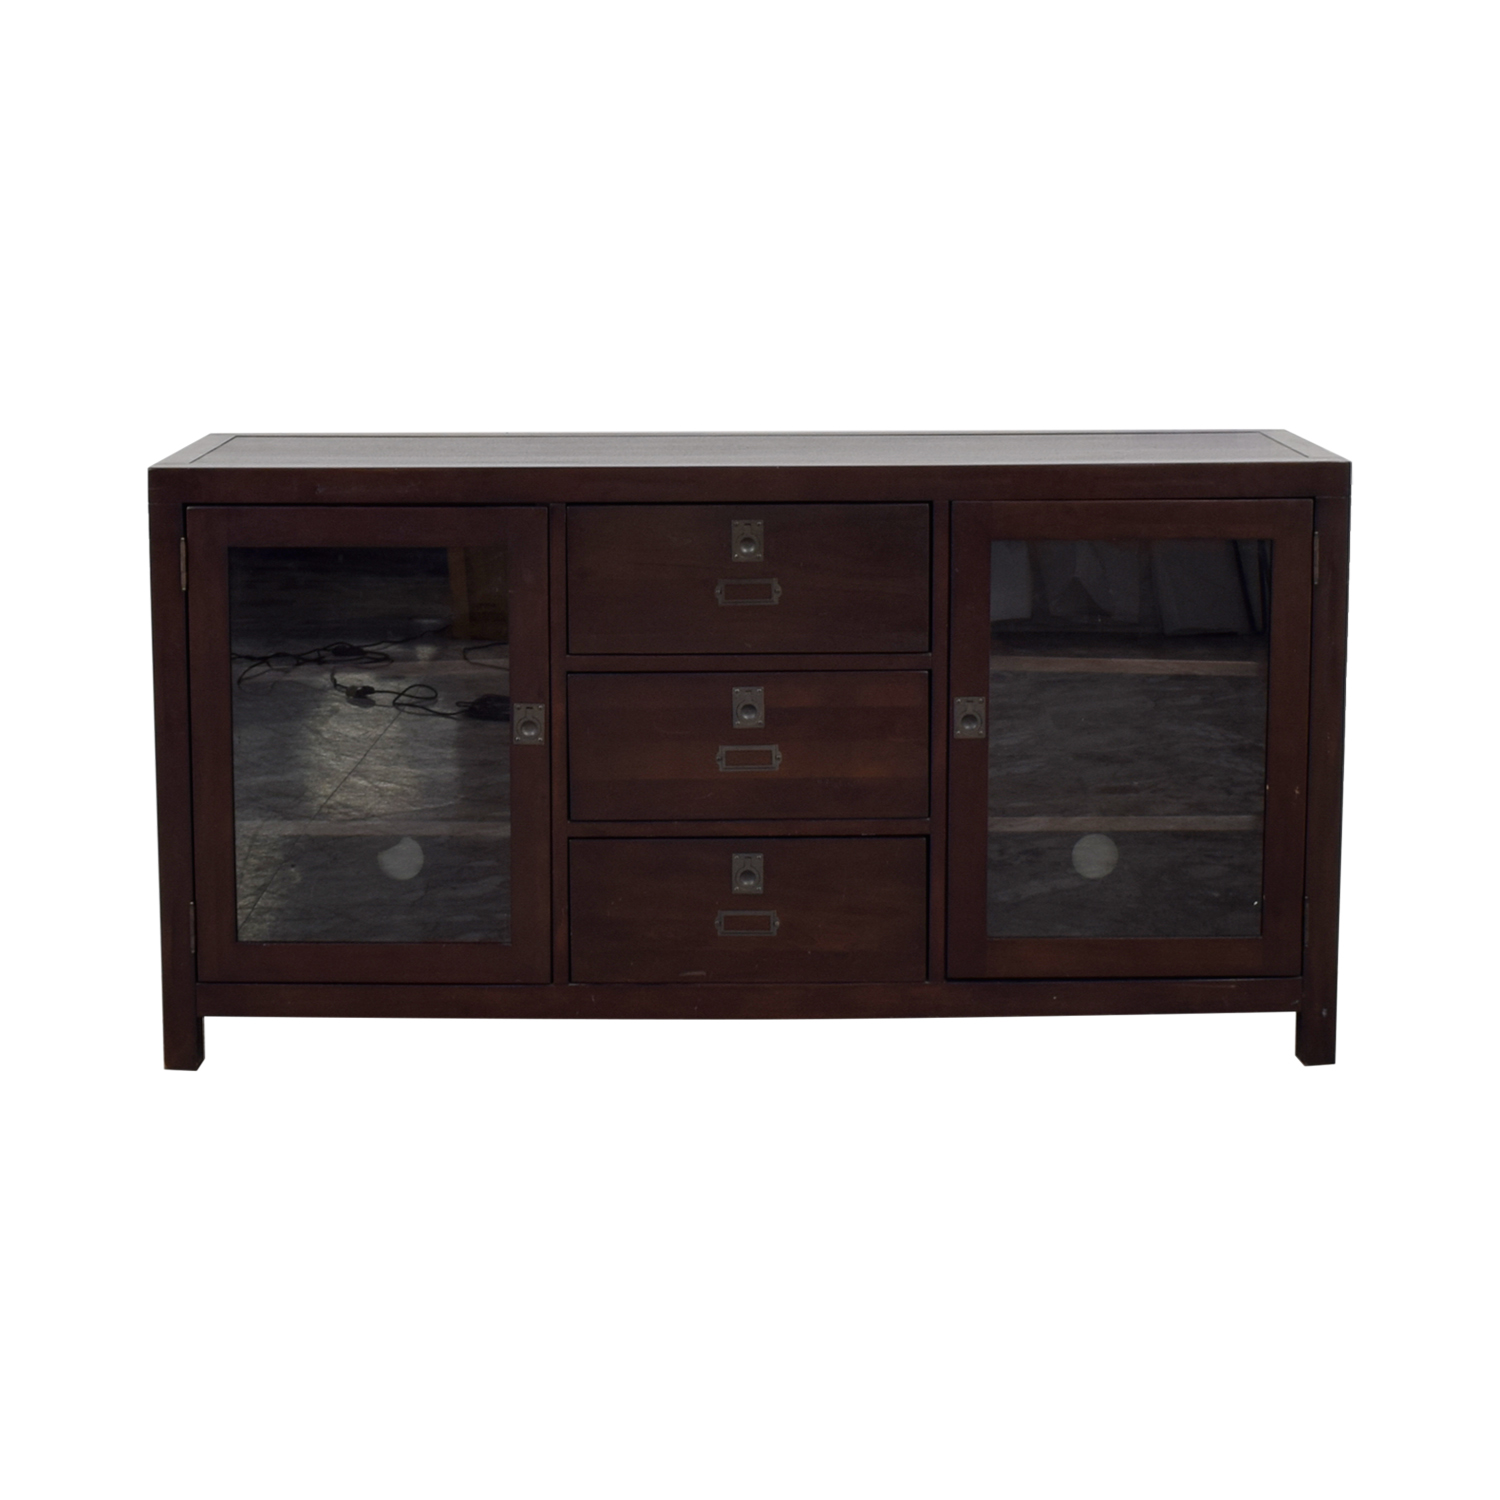 Pottery Barn Pottery Barn Media Console With Glass Curios coupon